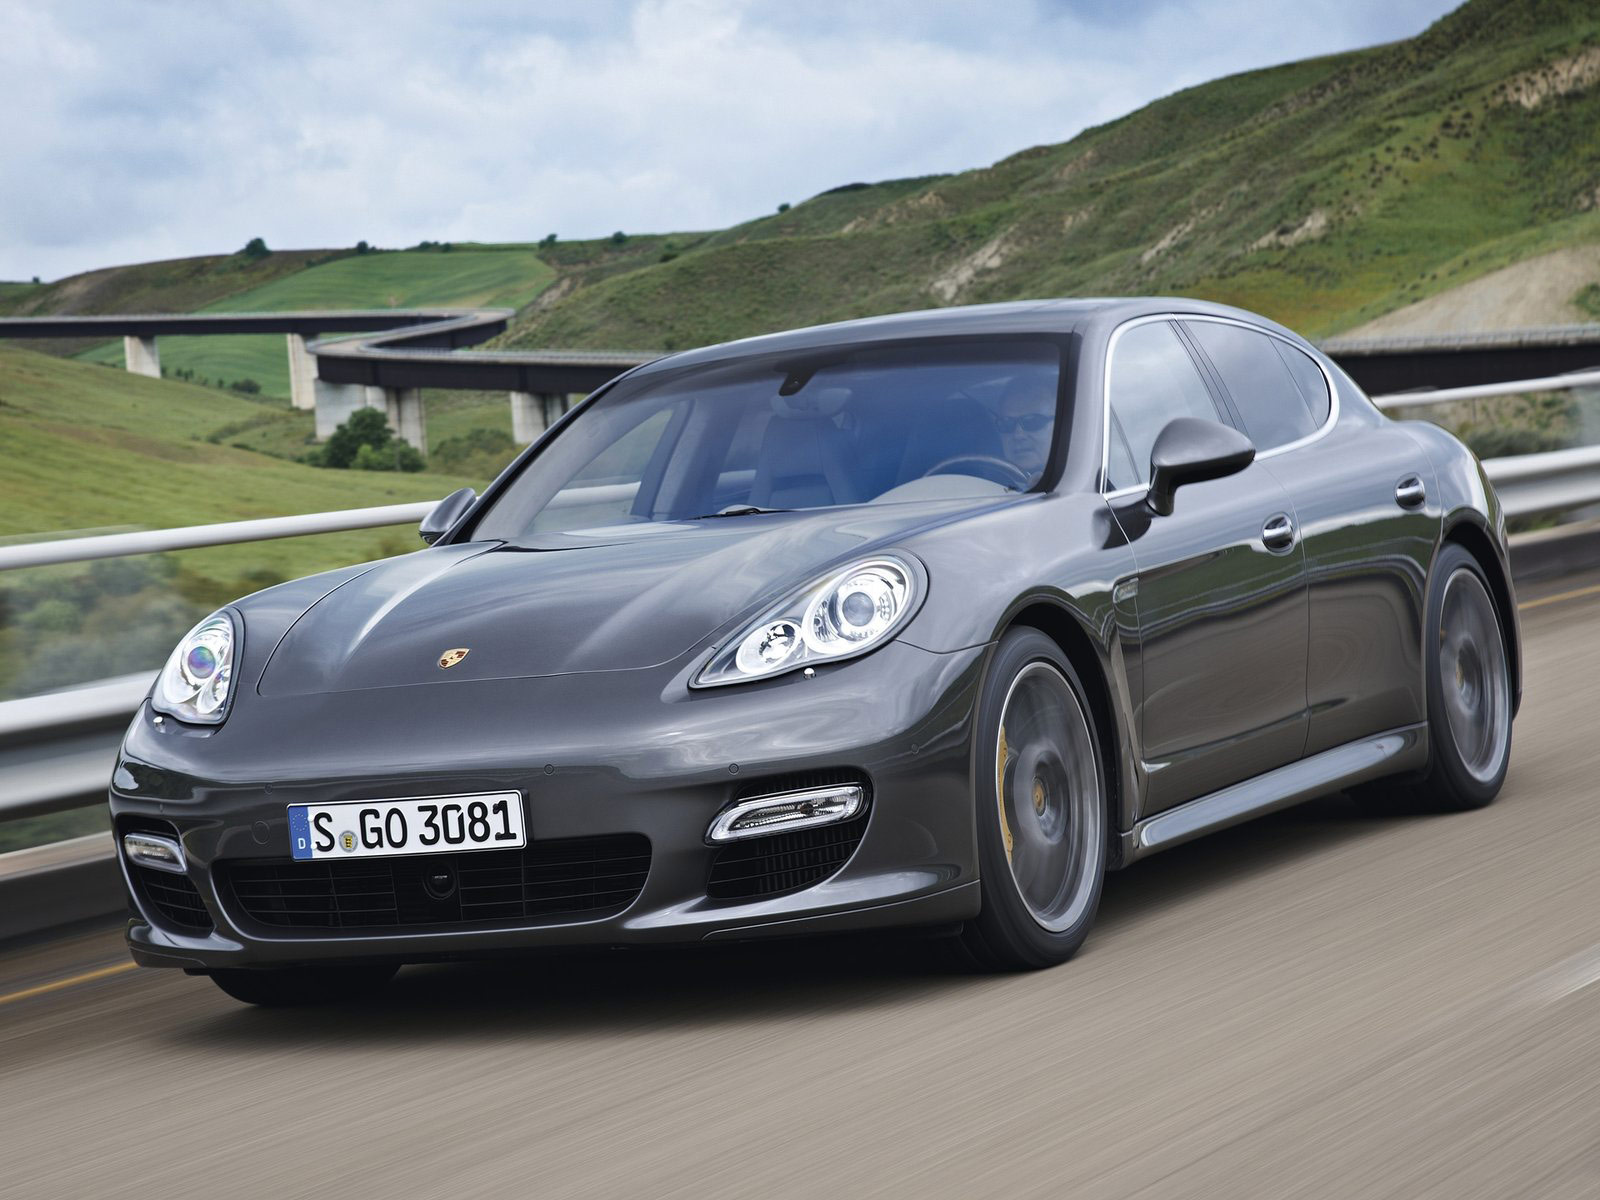 2012 porsche panamera turbo s pictures specifications. Black Bedroom Furniture Sets. Home Design Ideas